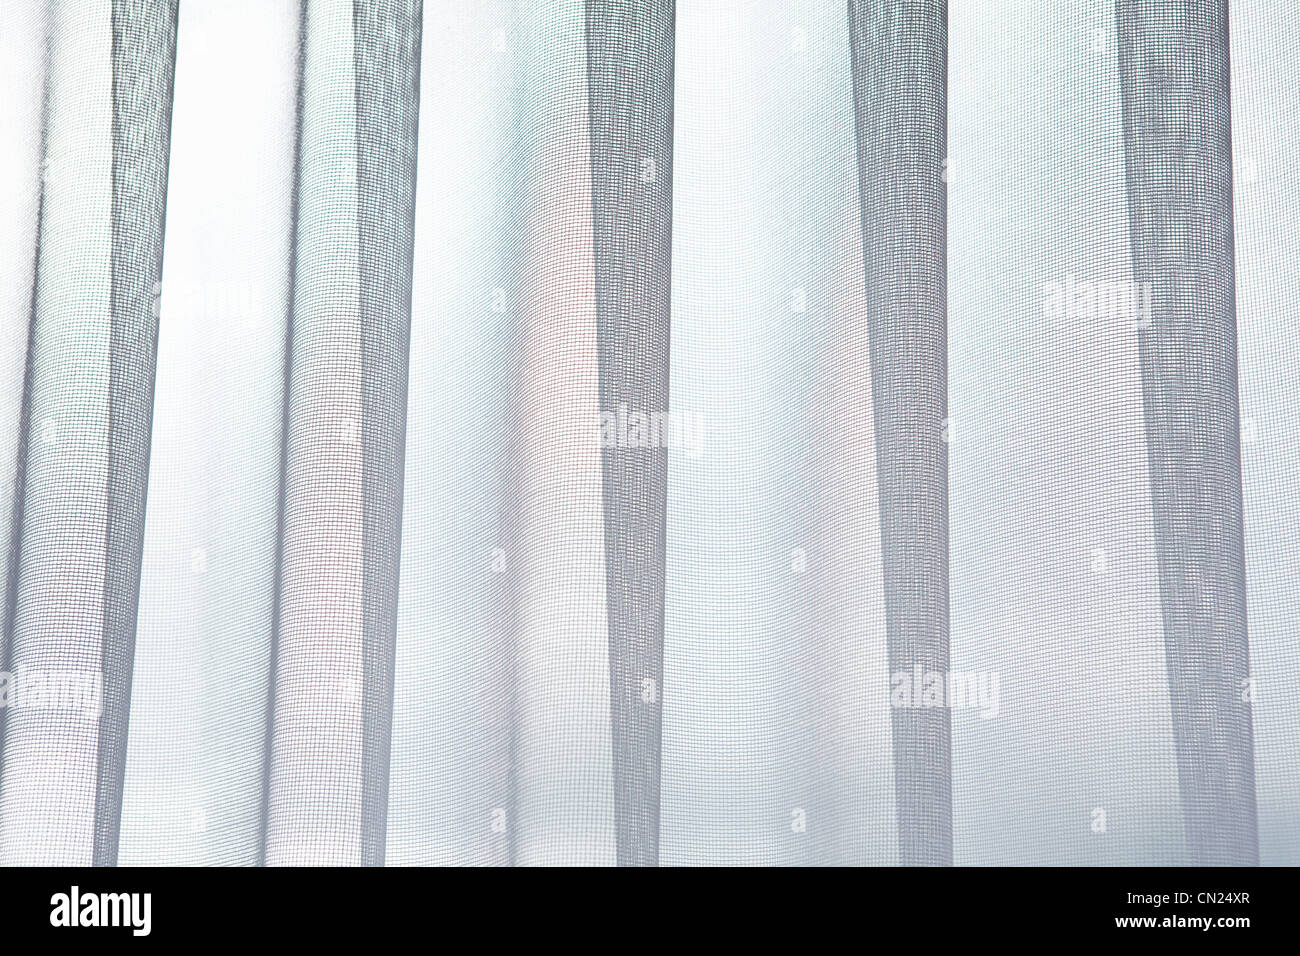 Net curtain, abstract - Stock Image